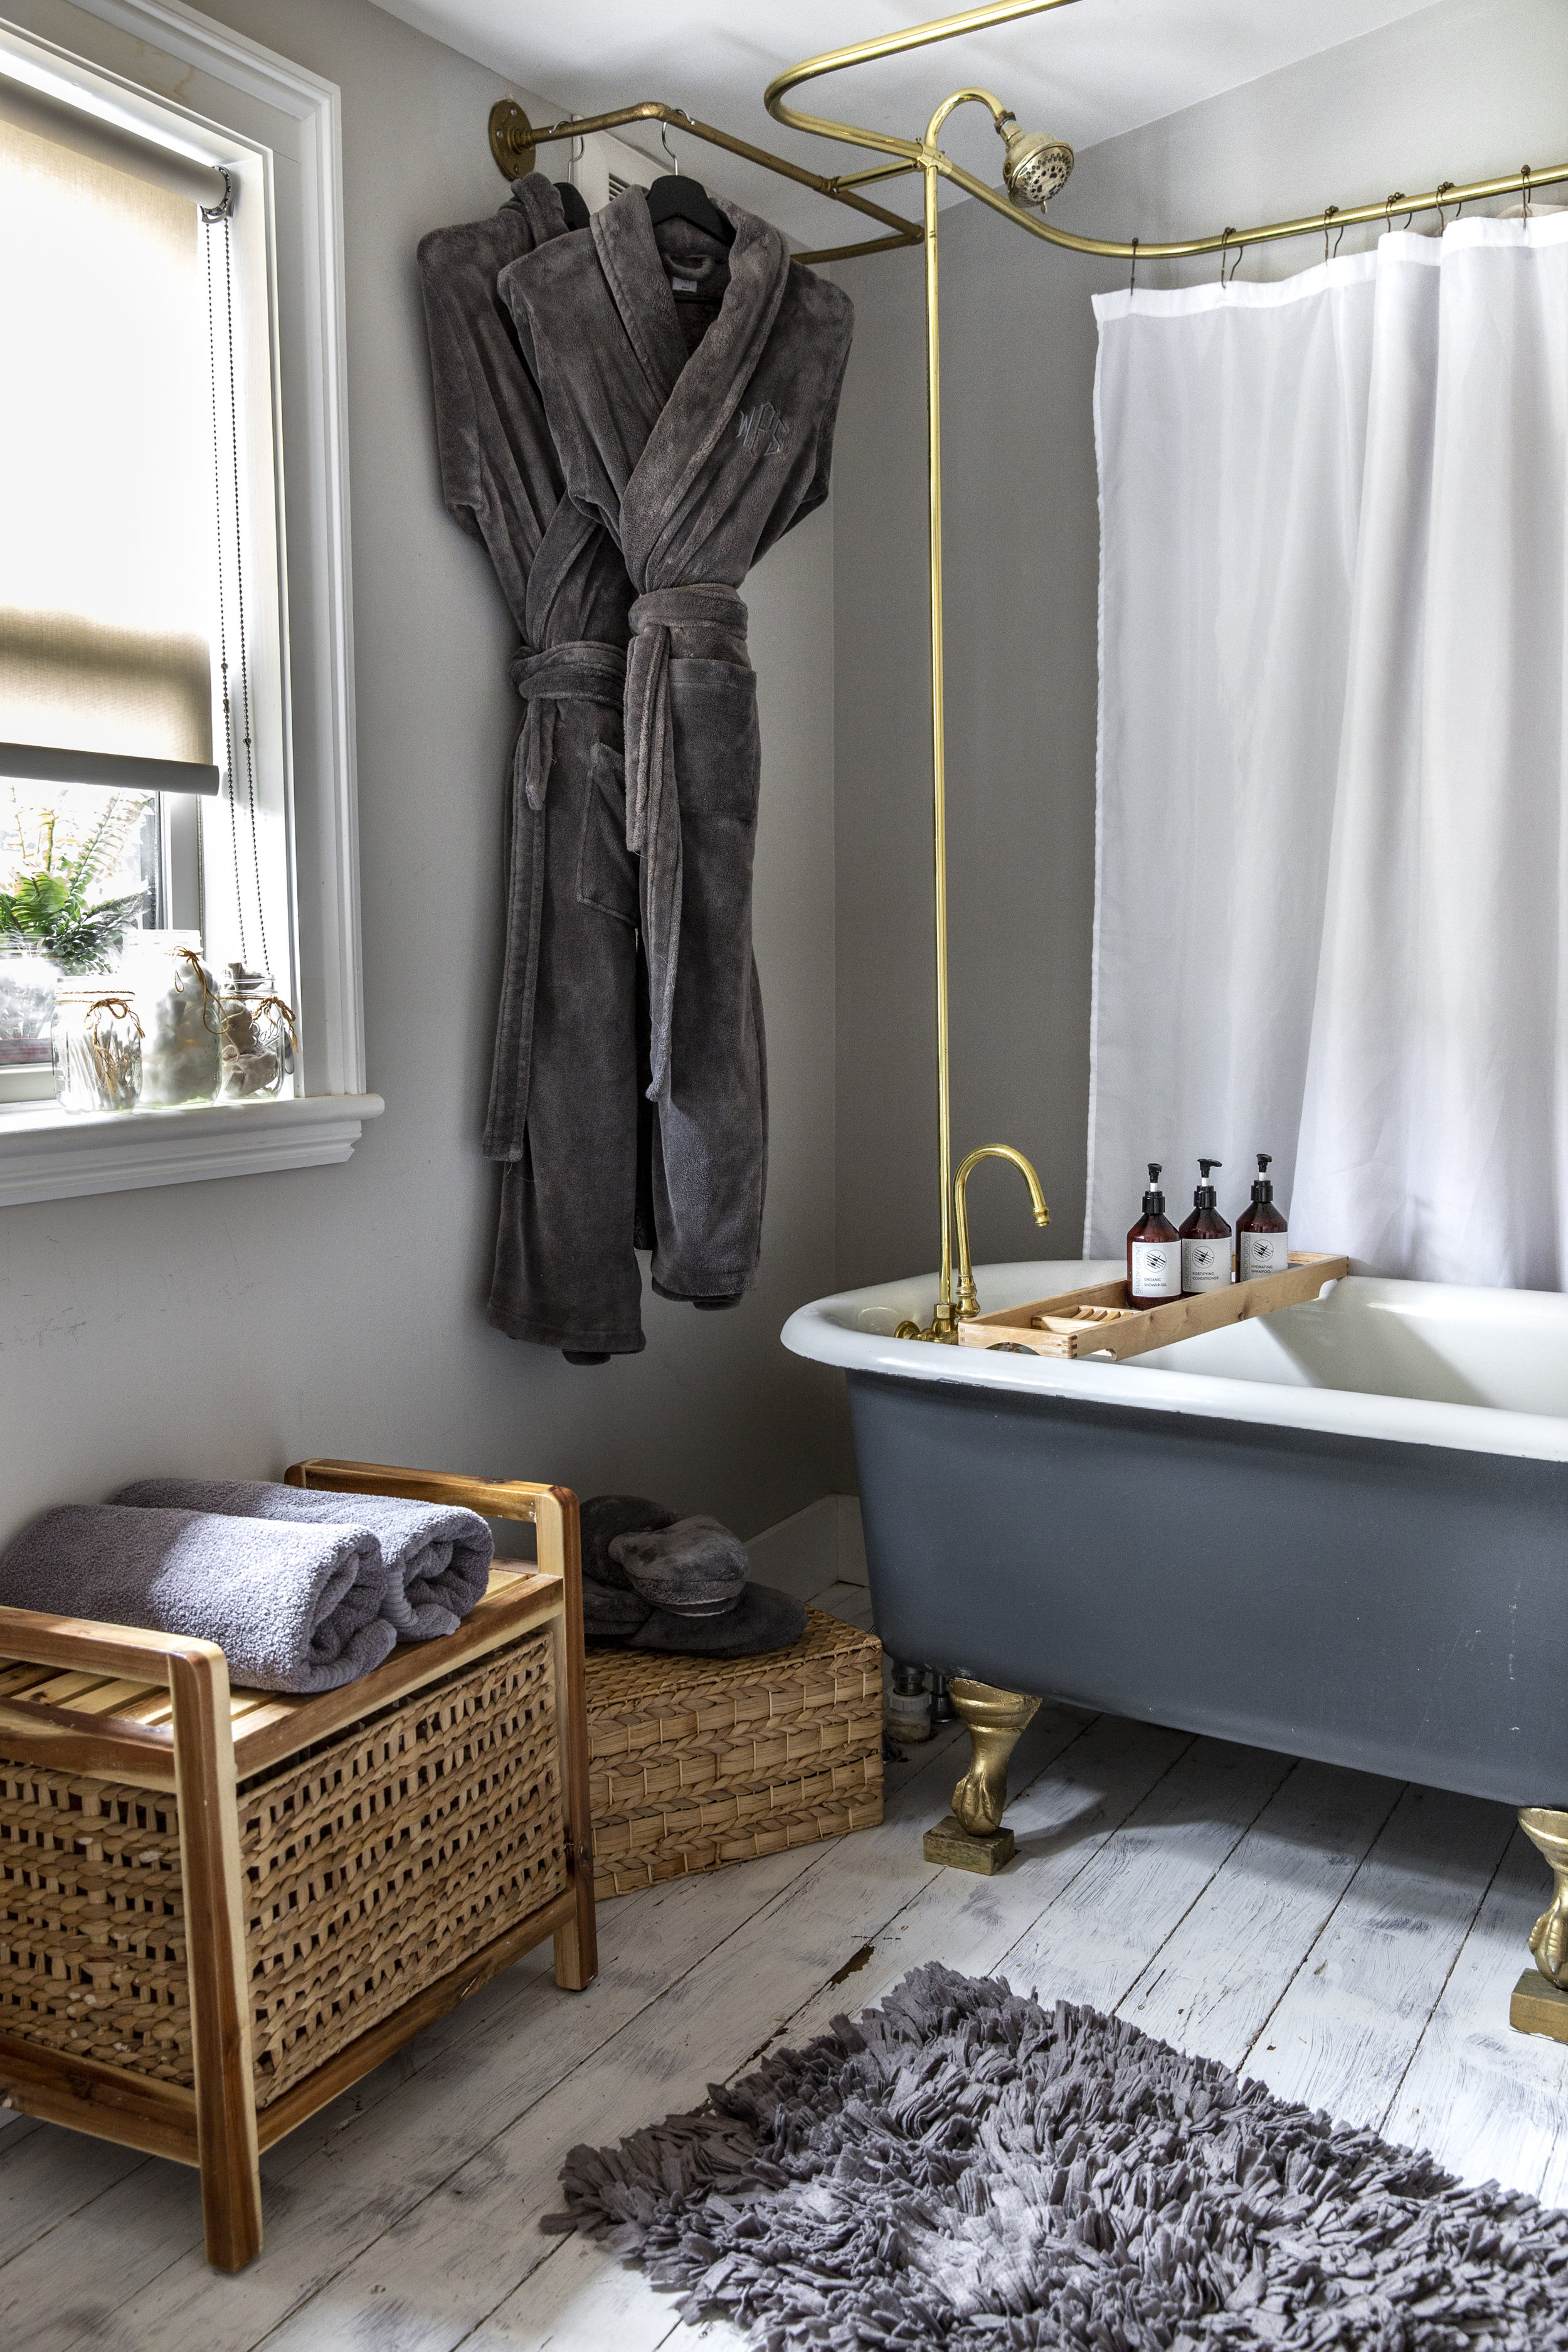 The Lee Wendell Suite - luxurious robes hanging in bathroom with full tub and shower